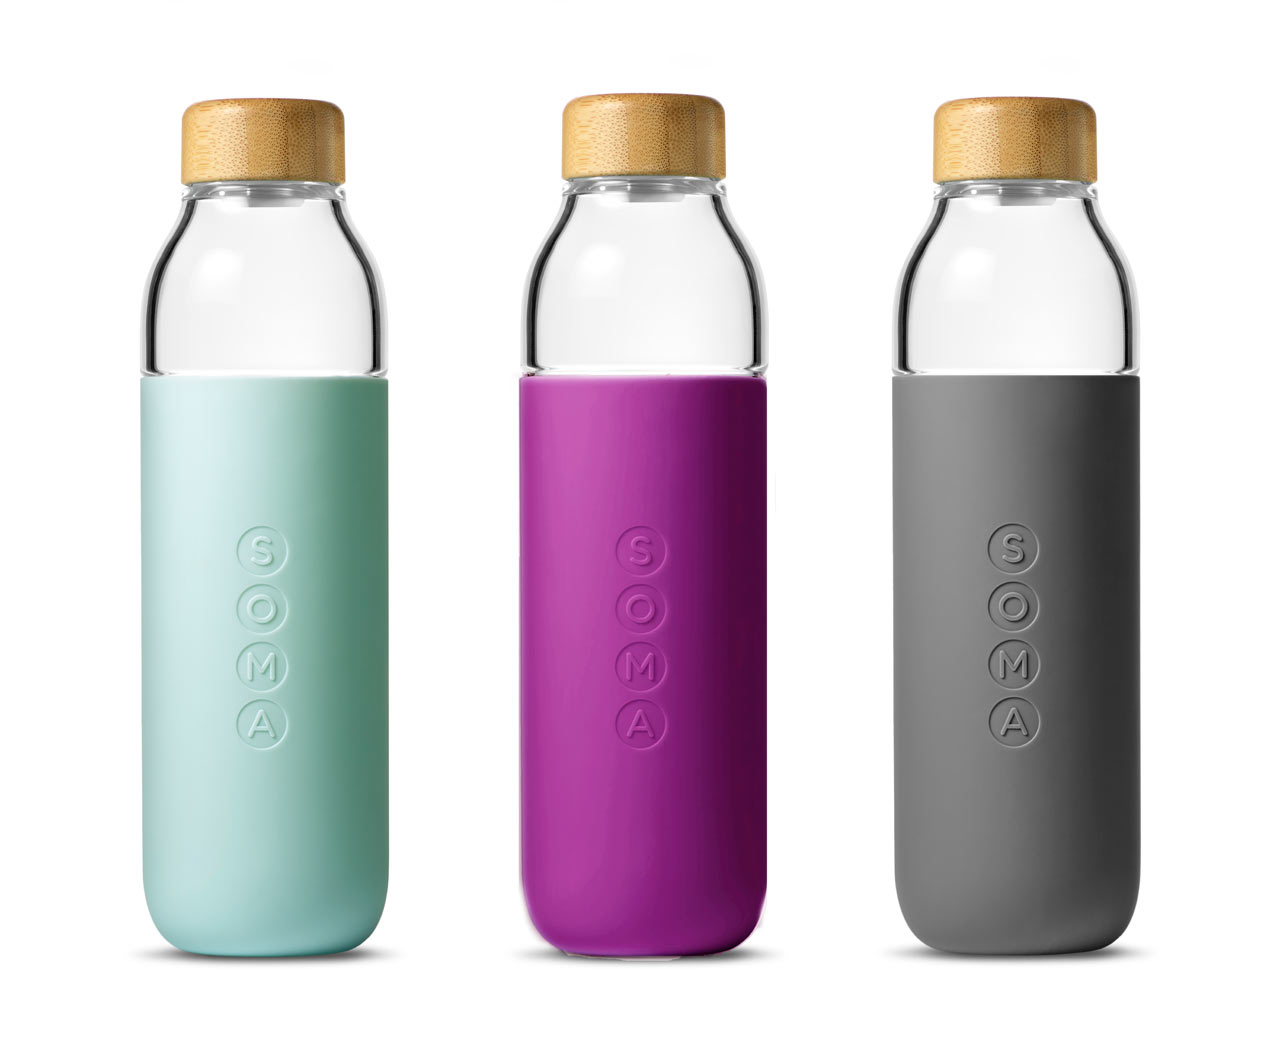 Soma Launches a Glass Water Bottle